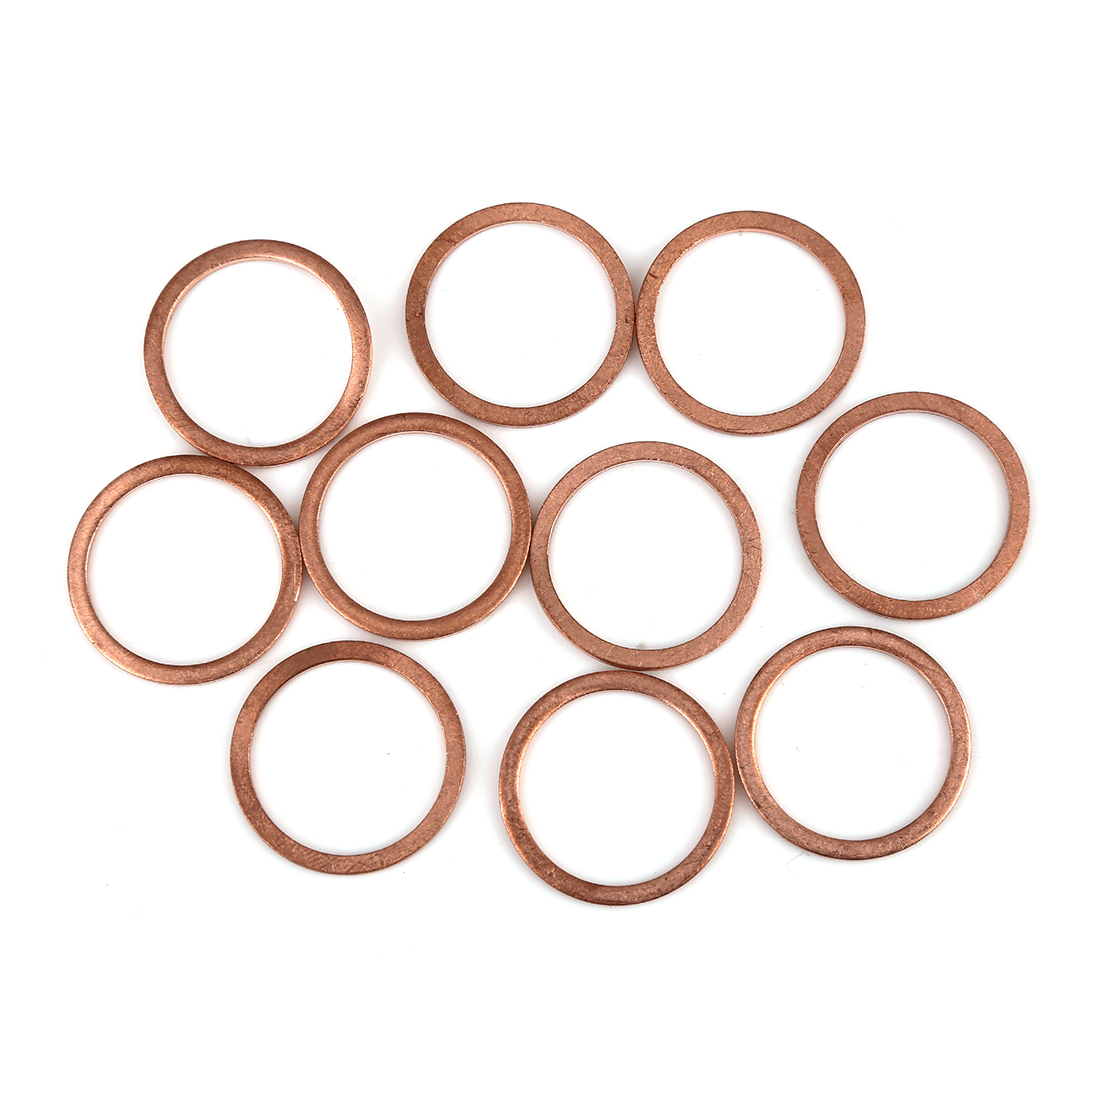 10pcs Copper Washer Flat Sealing Gasket Ring Spacer for Car 22 x 27 x 1.5mm